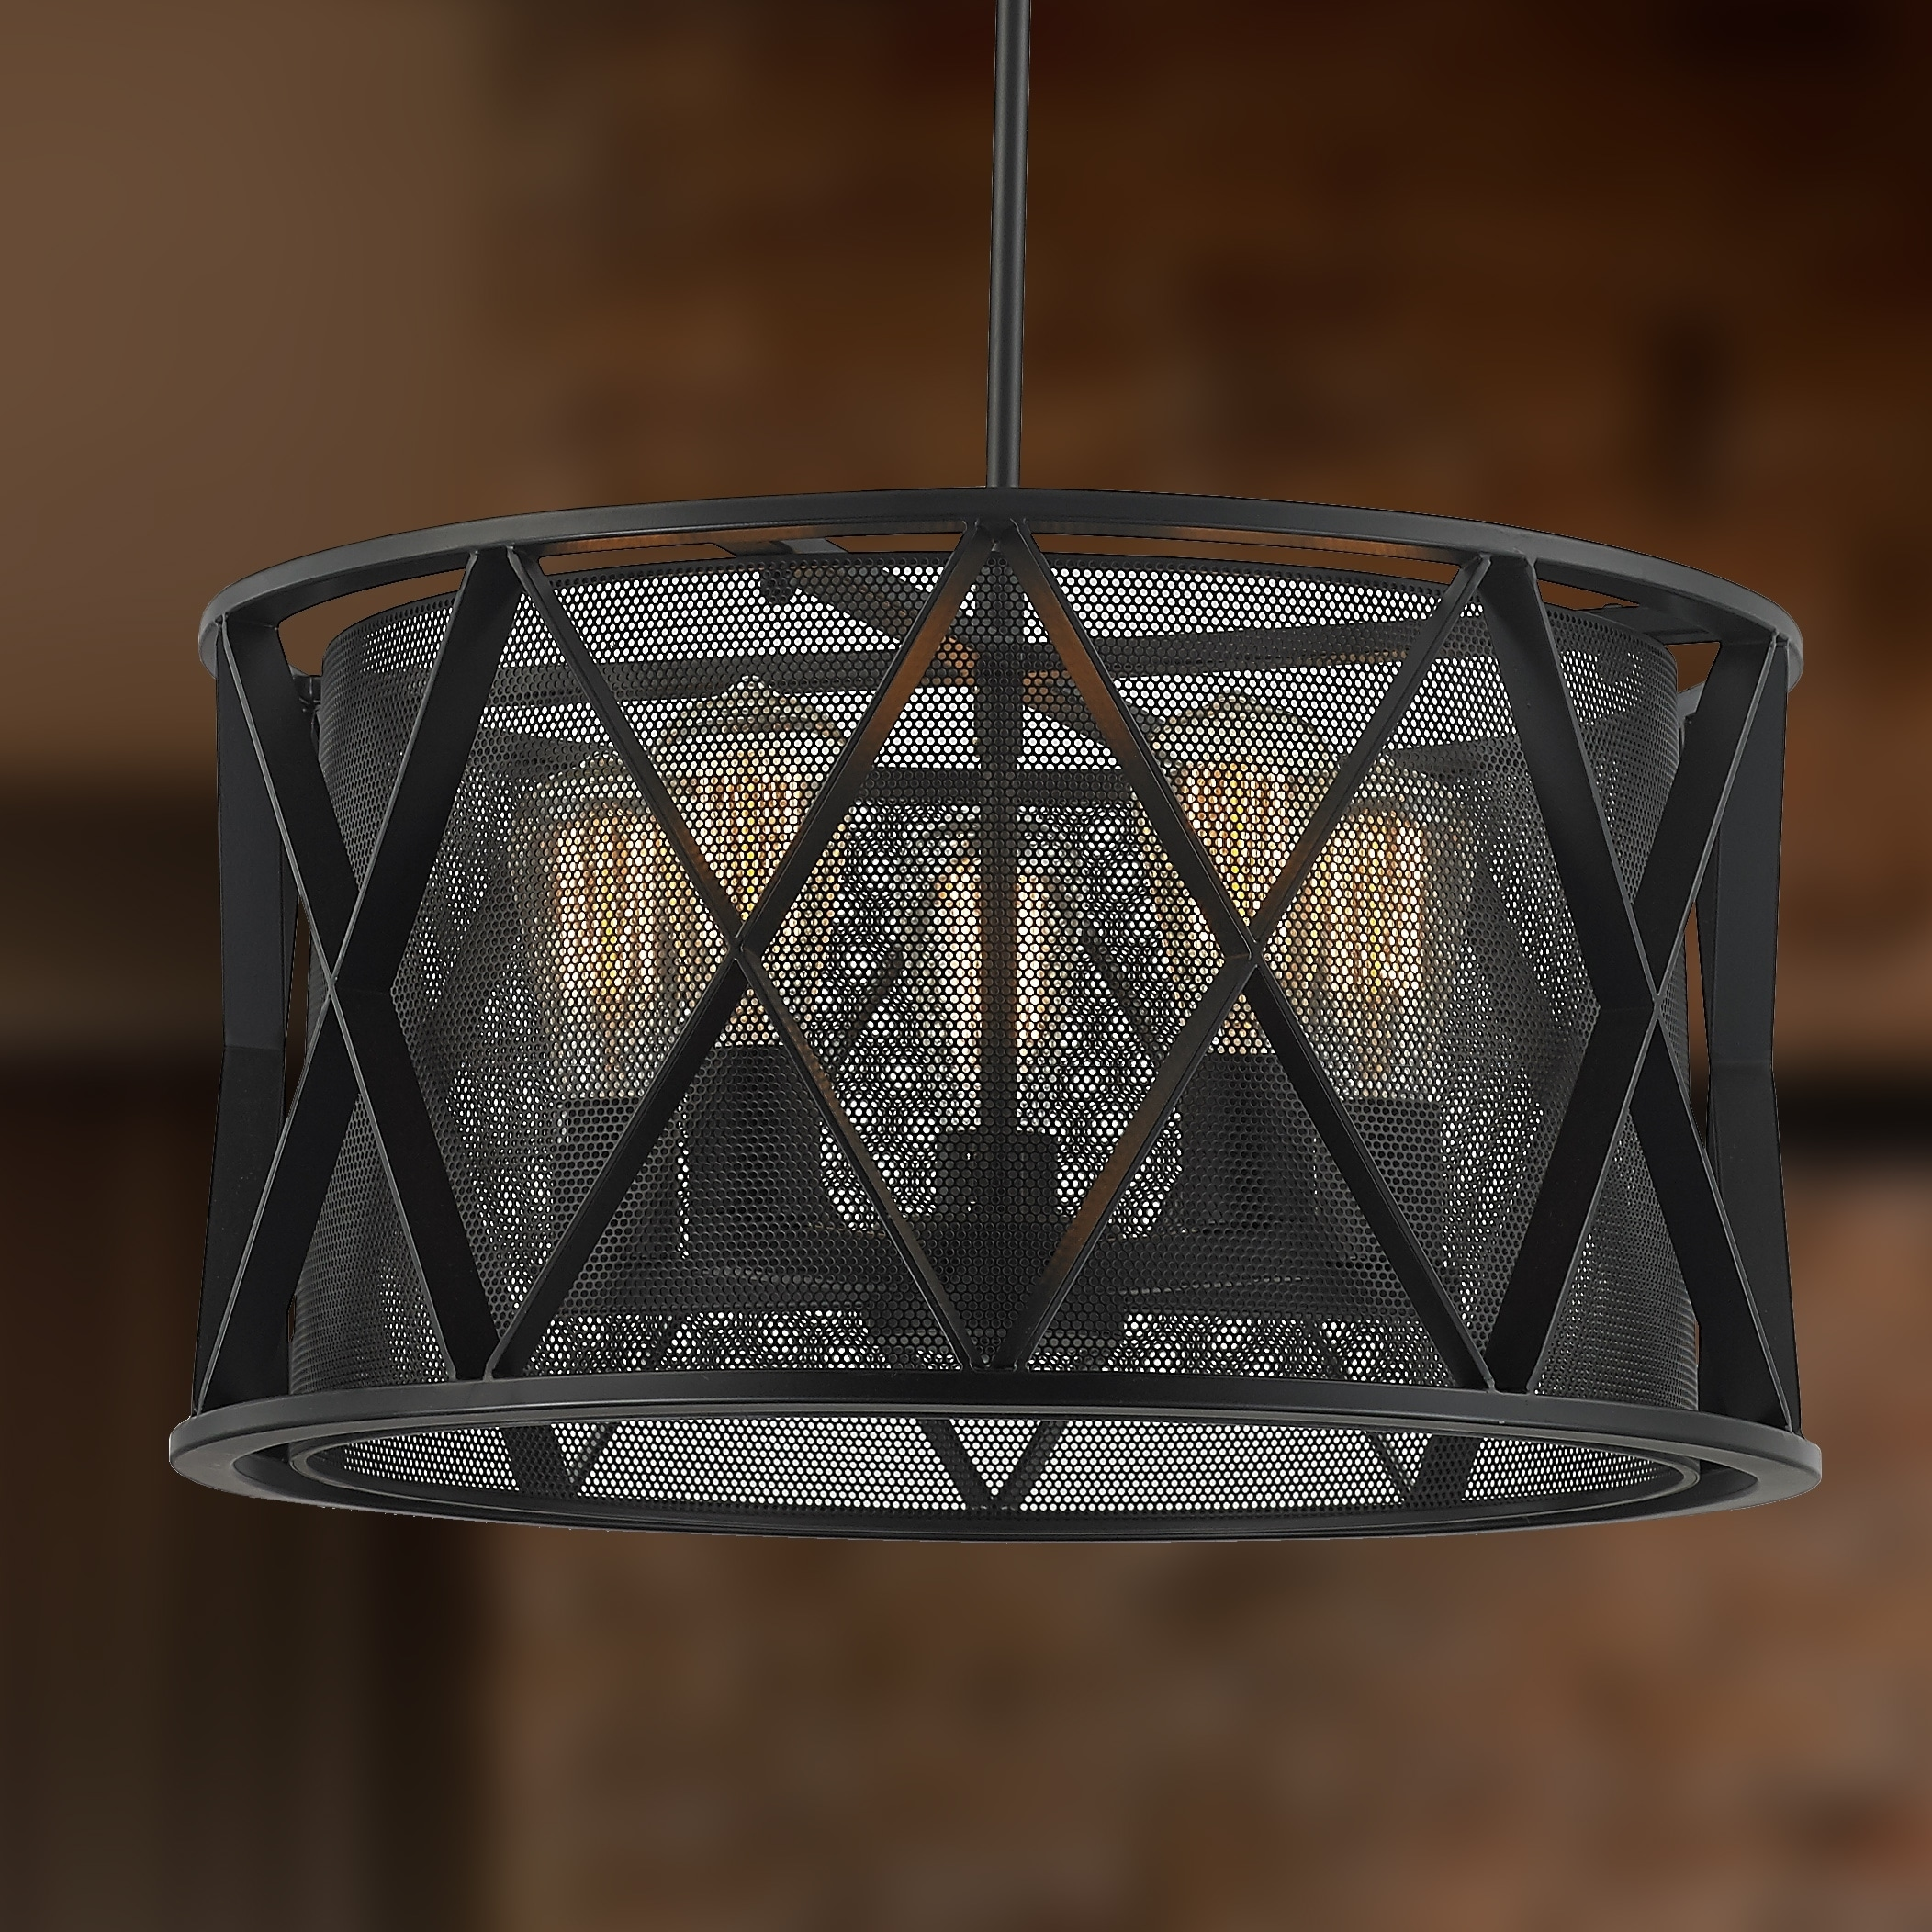 Taiko Collection 5 Light Mesh Drum Shade Pendant Light in Matte